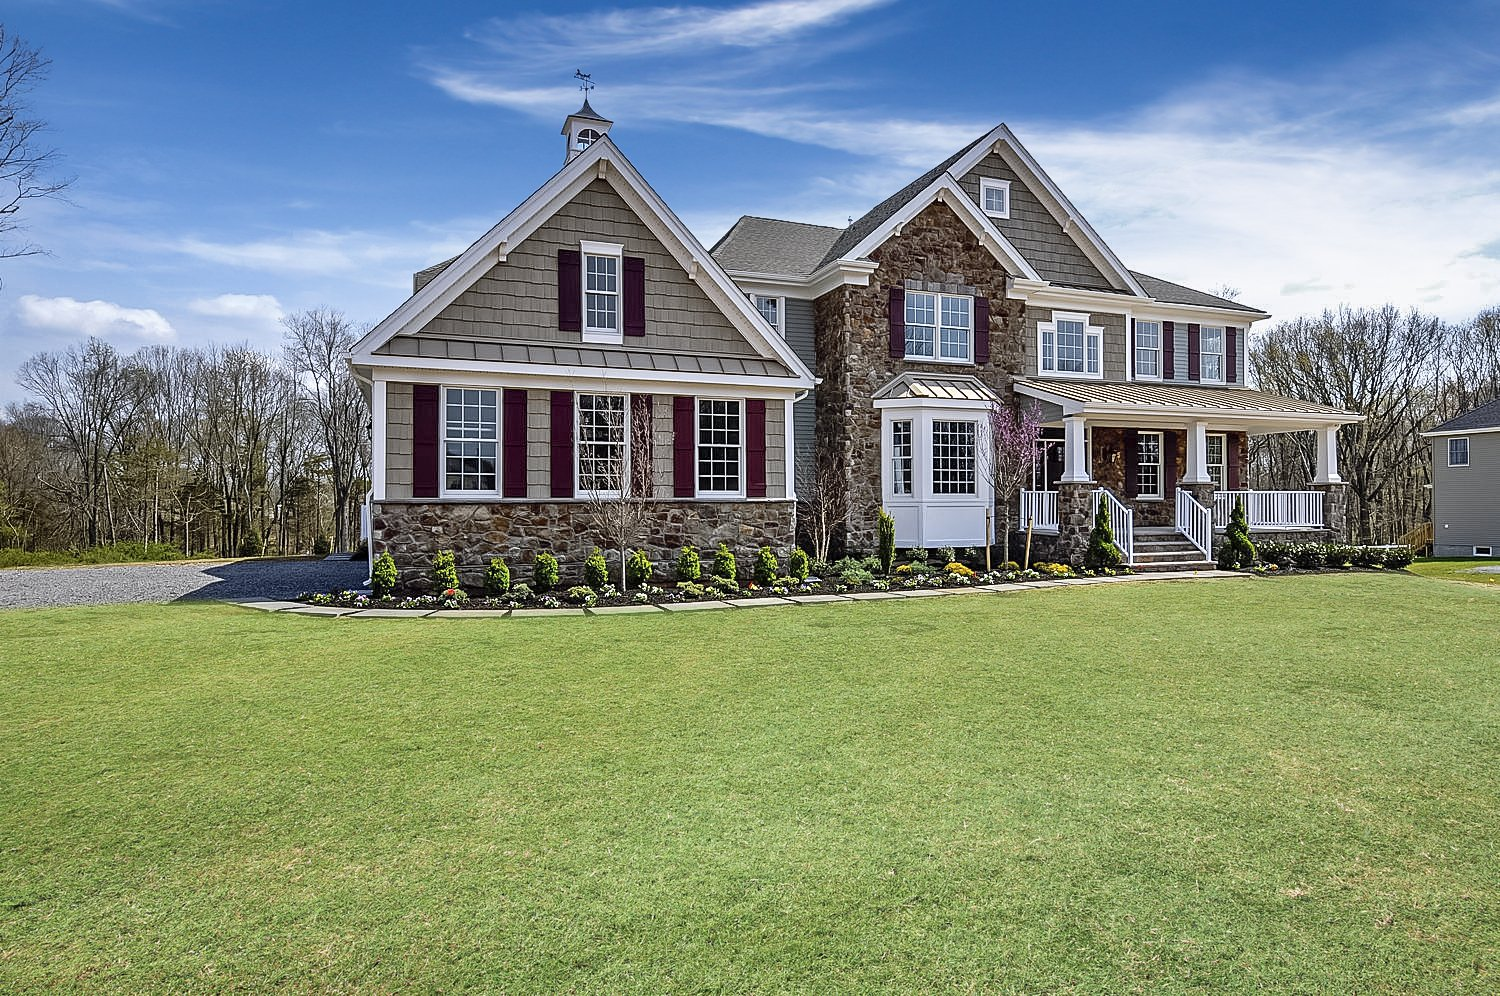 What Does It Cost to Build a Home in New Jersey?